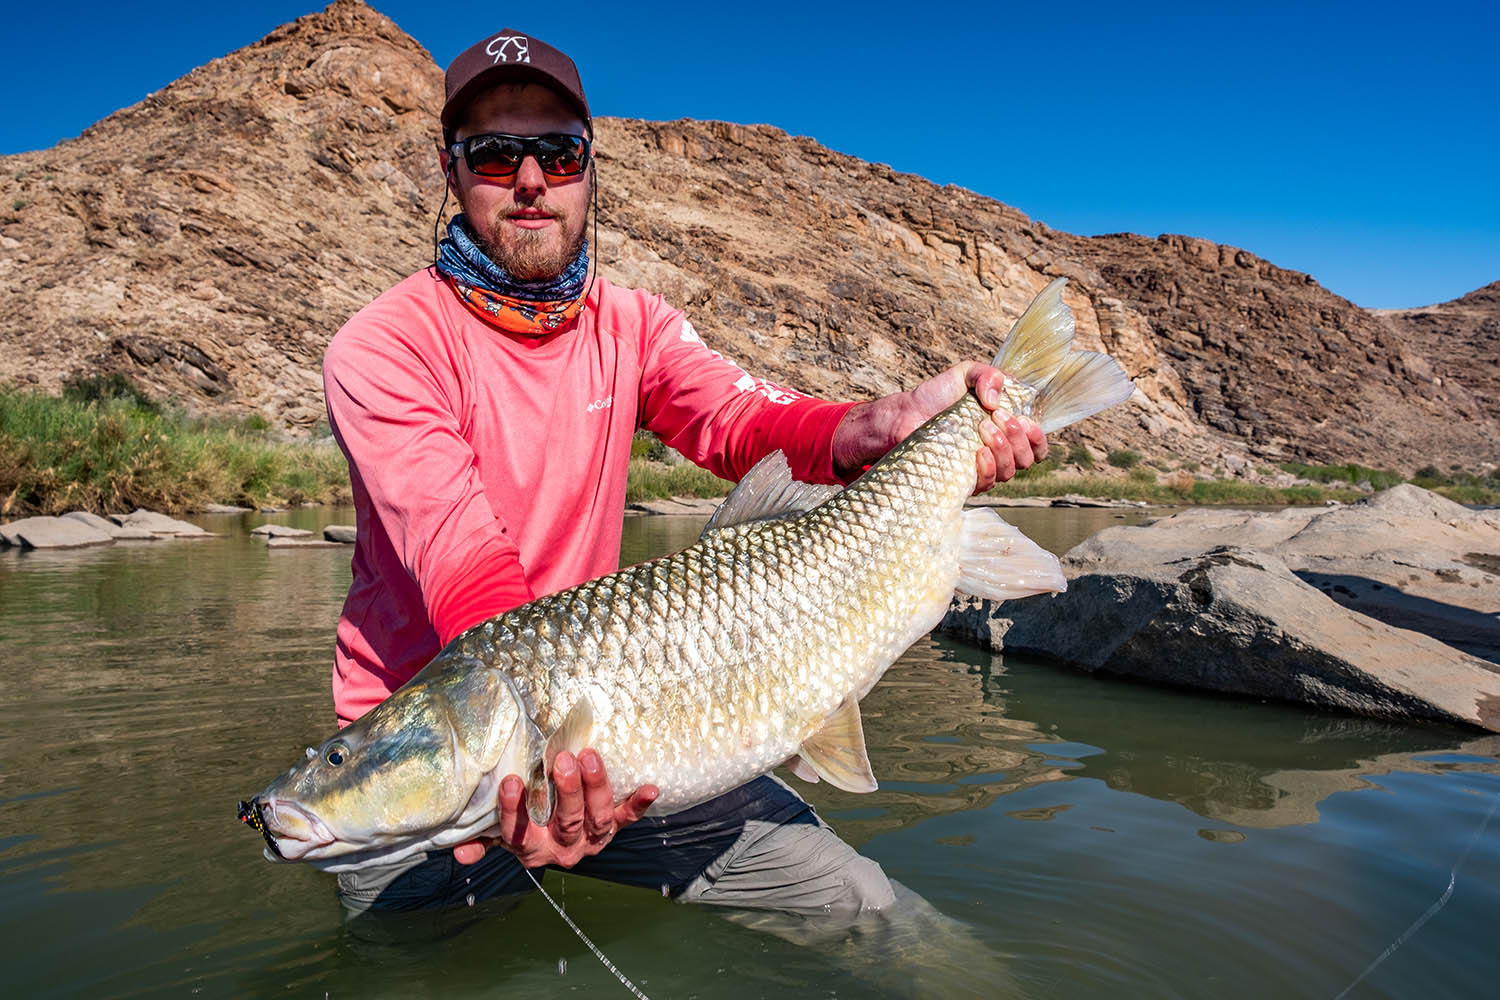 south-africa-kalahari-largemouth-yellowfish-expeditions-tours-tourette-fishing-fish